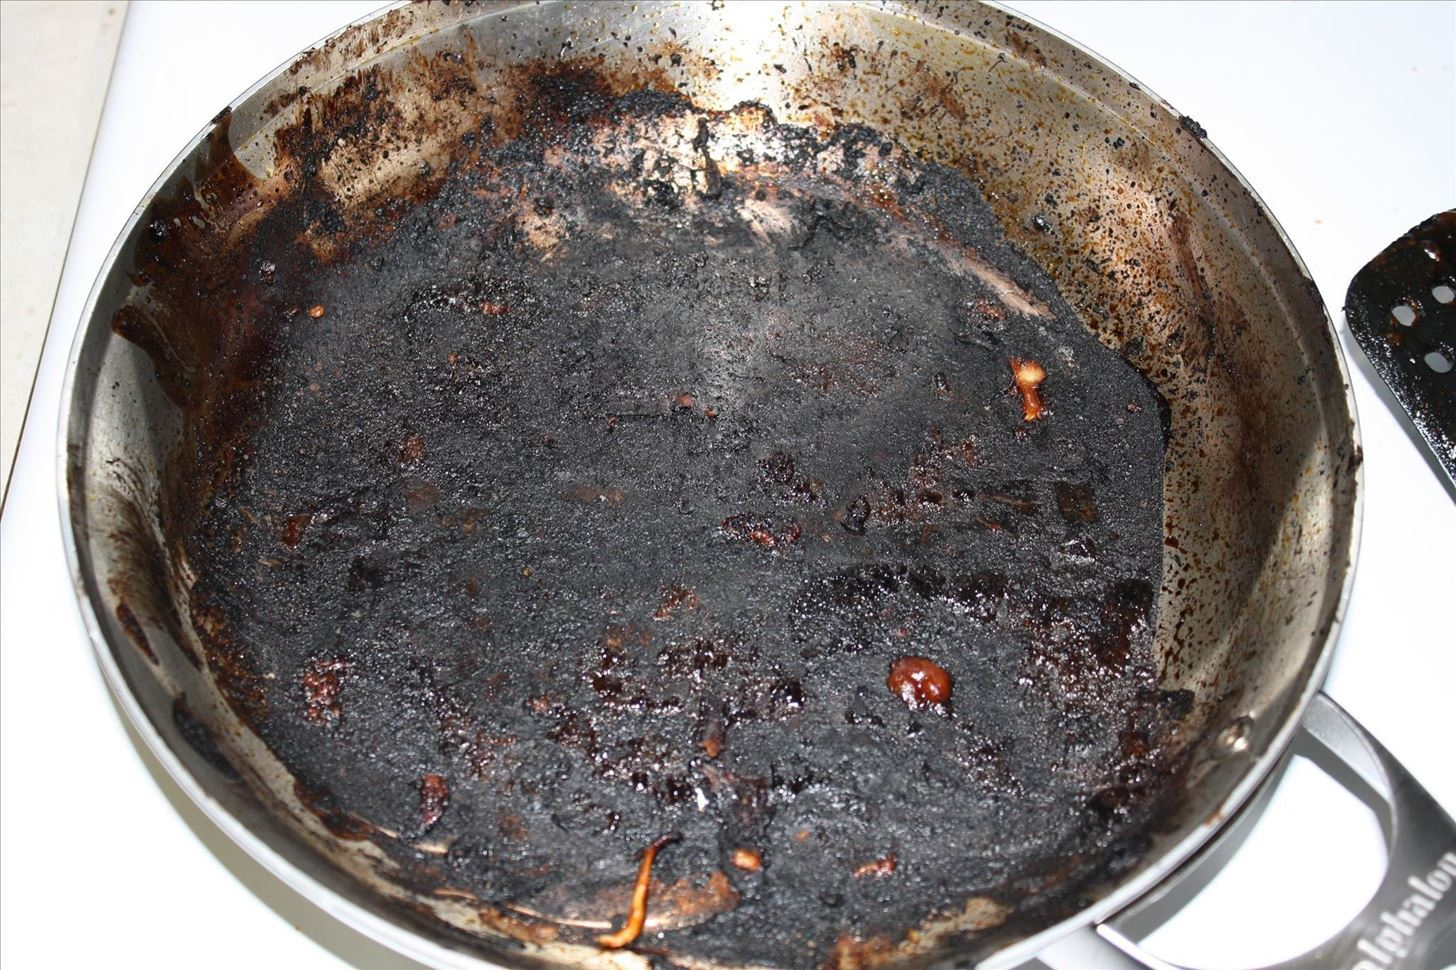 How To Clean Uncleanable Scorched Spots From Pots Pans Food Hacks Wonderhowto